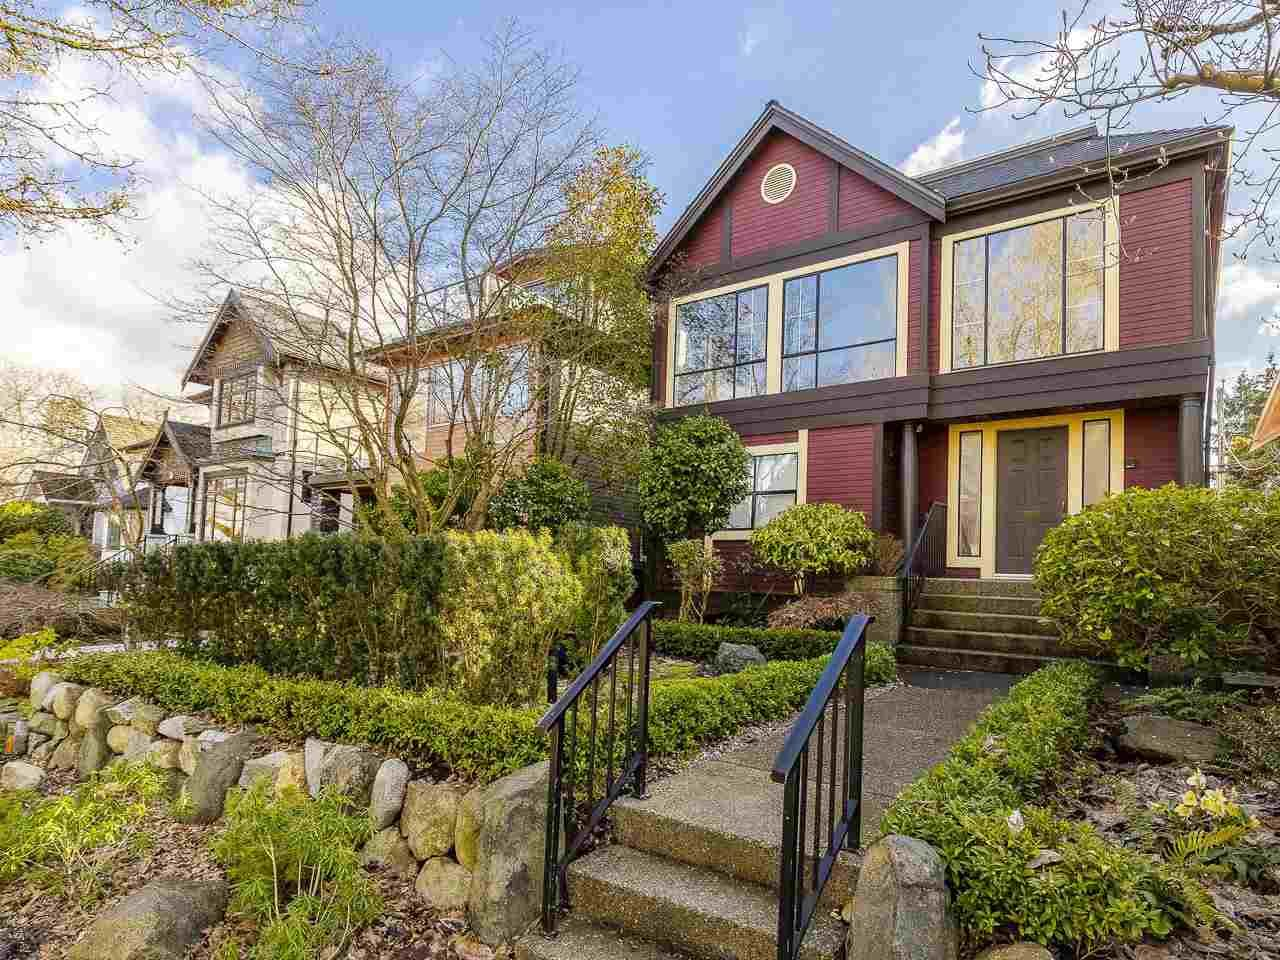 """Main Photo: 4228 W 11TH Avenue in Vancouver: Point Grey House for sale in """"Point Grey"""" (Vancouver West)  : MLS®# R2542043"""